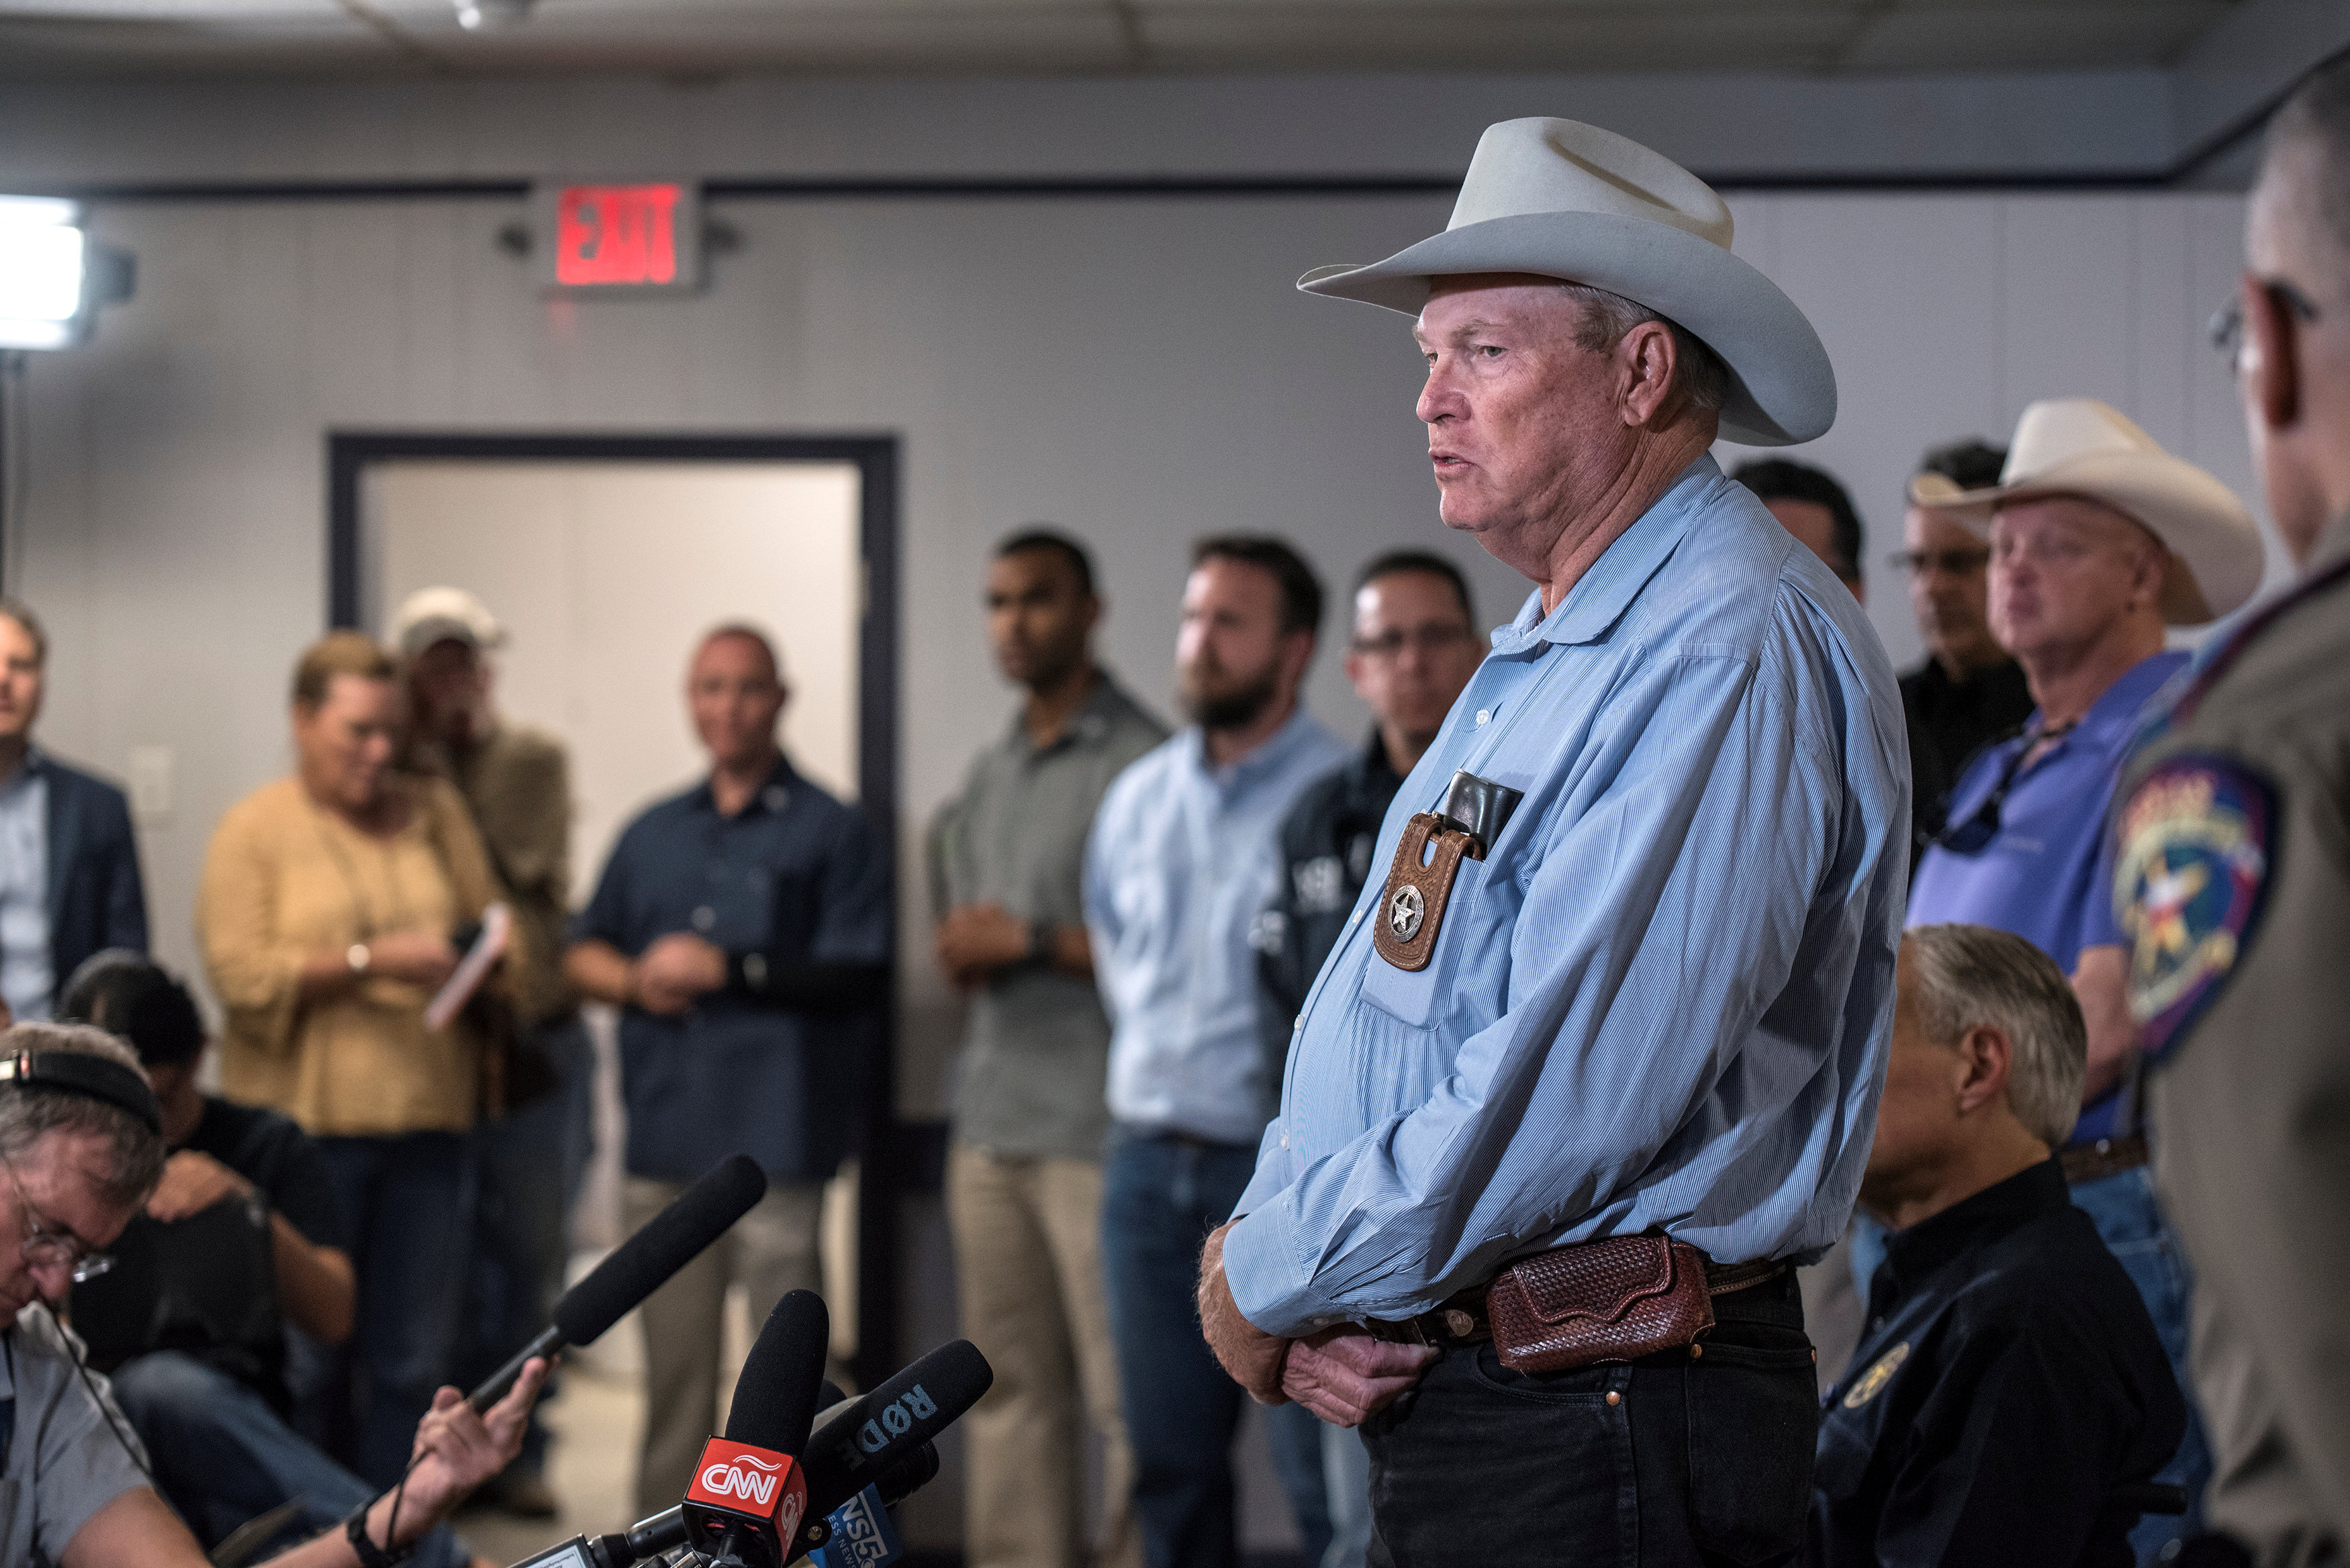 Wilson County Sheriff Joe Tackett gives an update during a news conference at the Stockdale Community Center following a shooting at the First Baptist Church in Sutherland Springs that left many dead and injured in Stockdale, Texas, U.S., November 5, 2017.